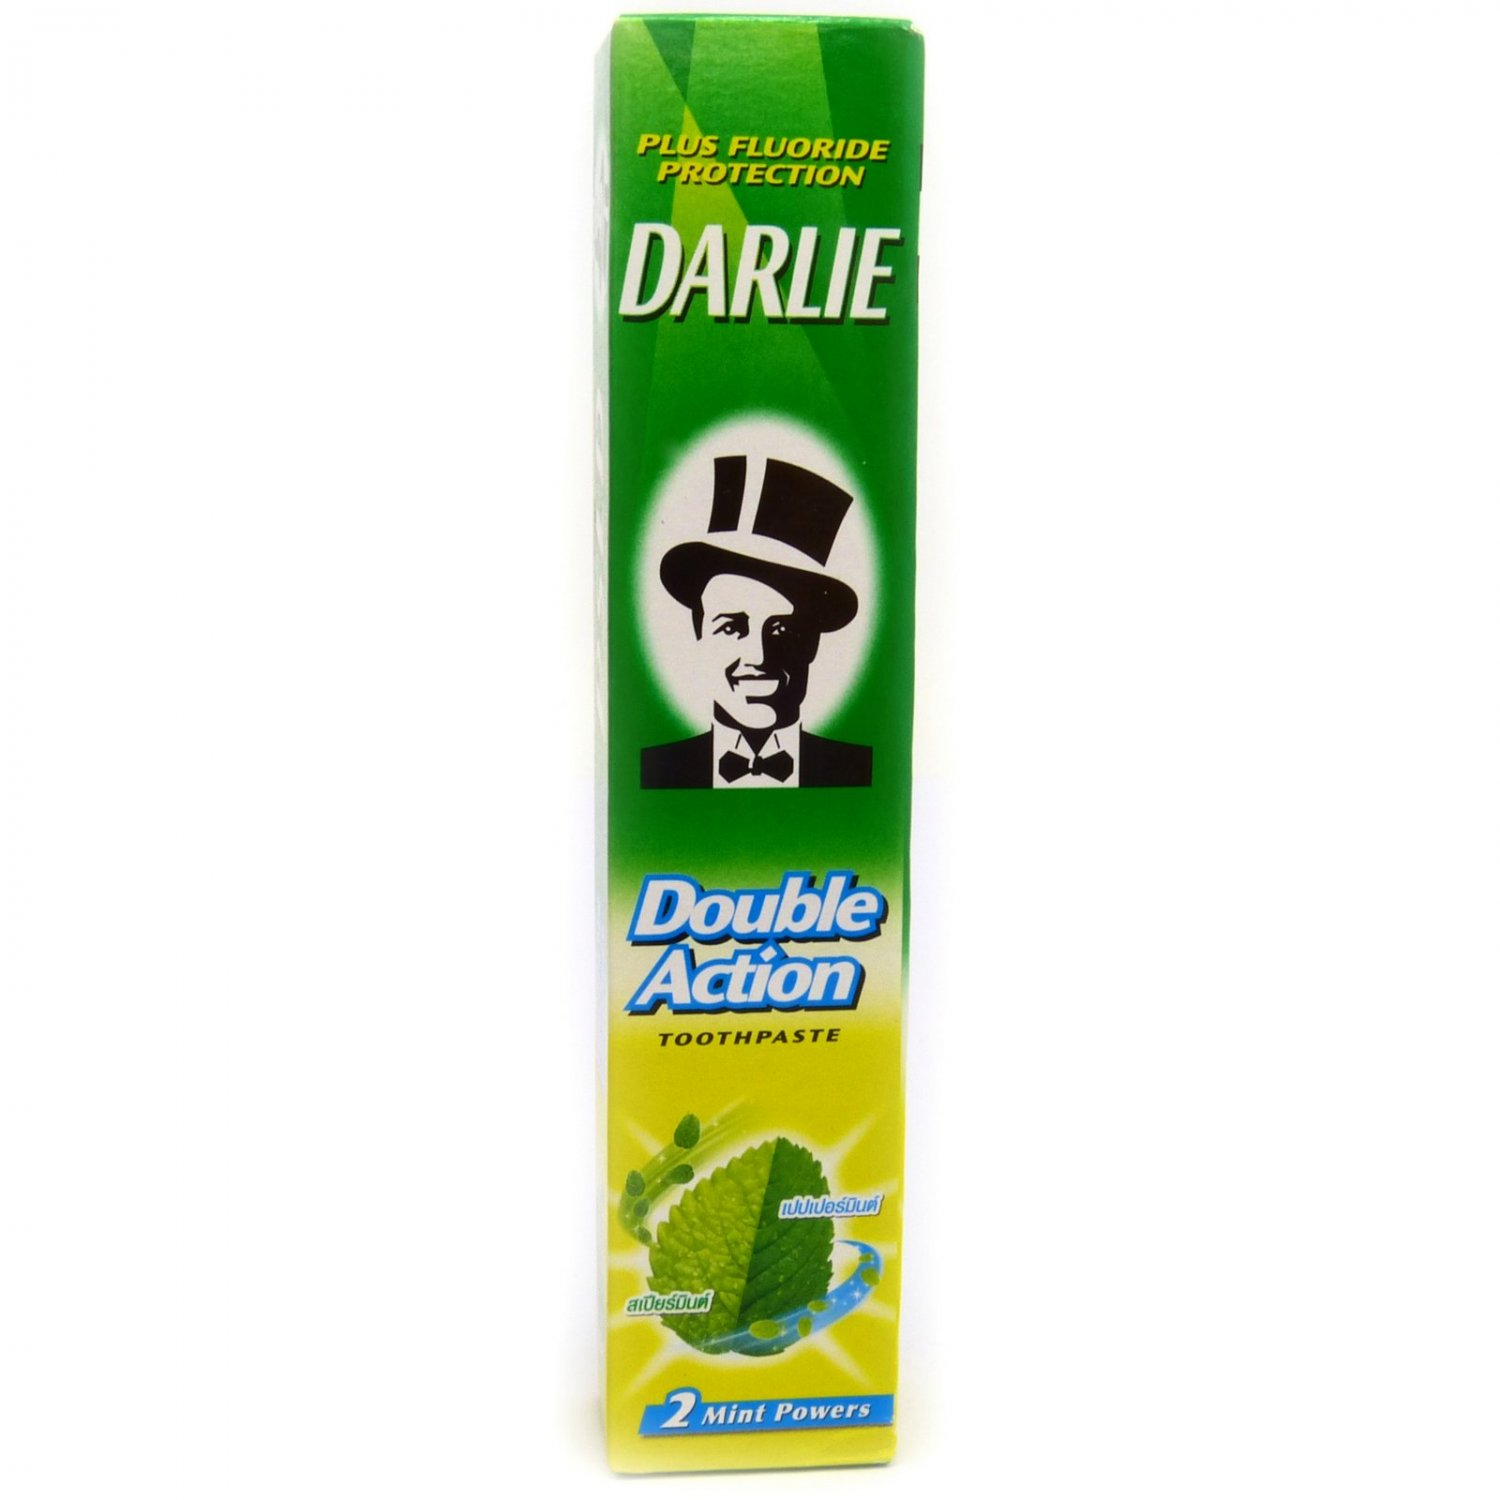 Darlie Double Action Fluoride Toothpaste 2 Mint Powers 35g (travel size)